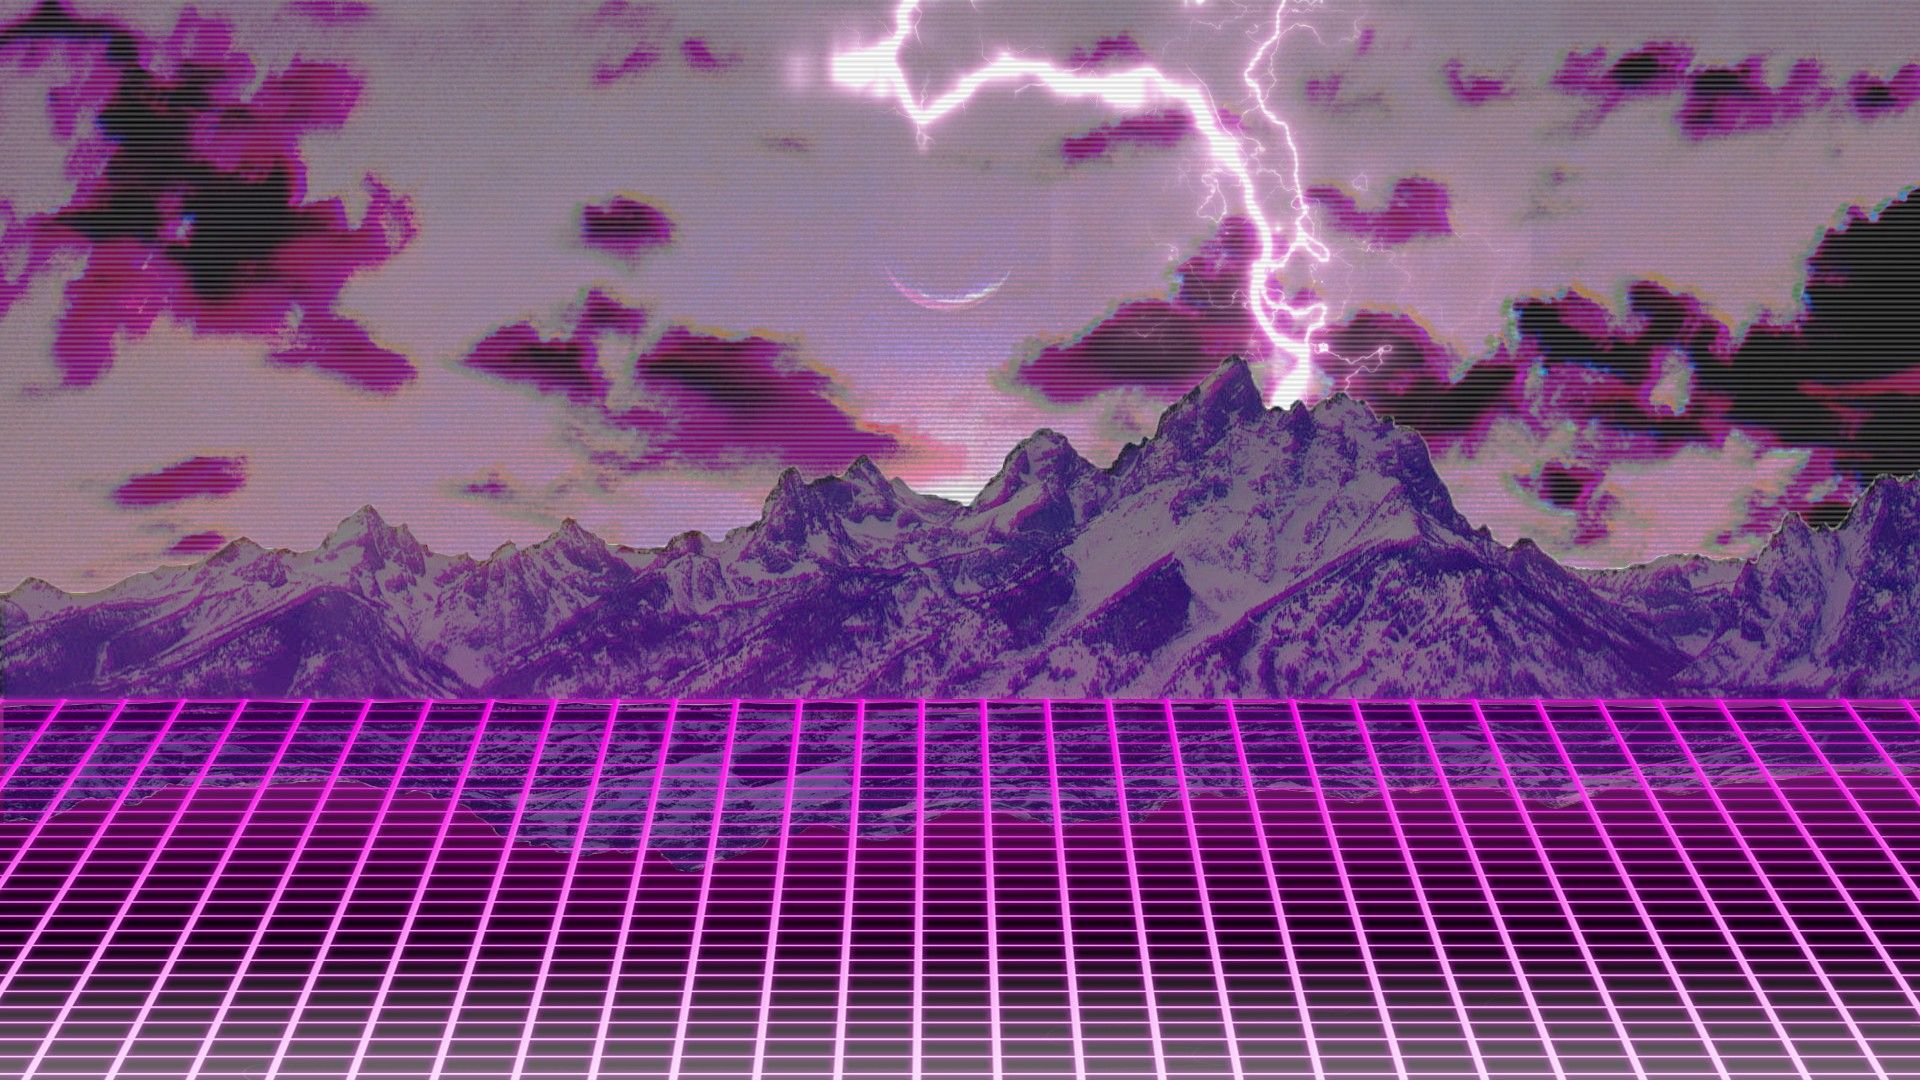 Free Synthwave Wallpaper 1920x1080 Wtg3107706 Yese69 Com 4k Wallpapers World